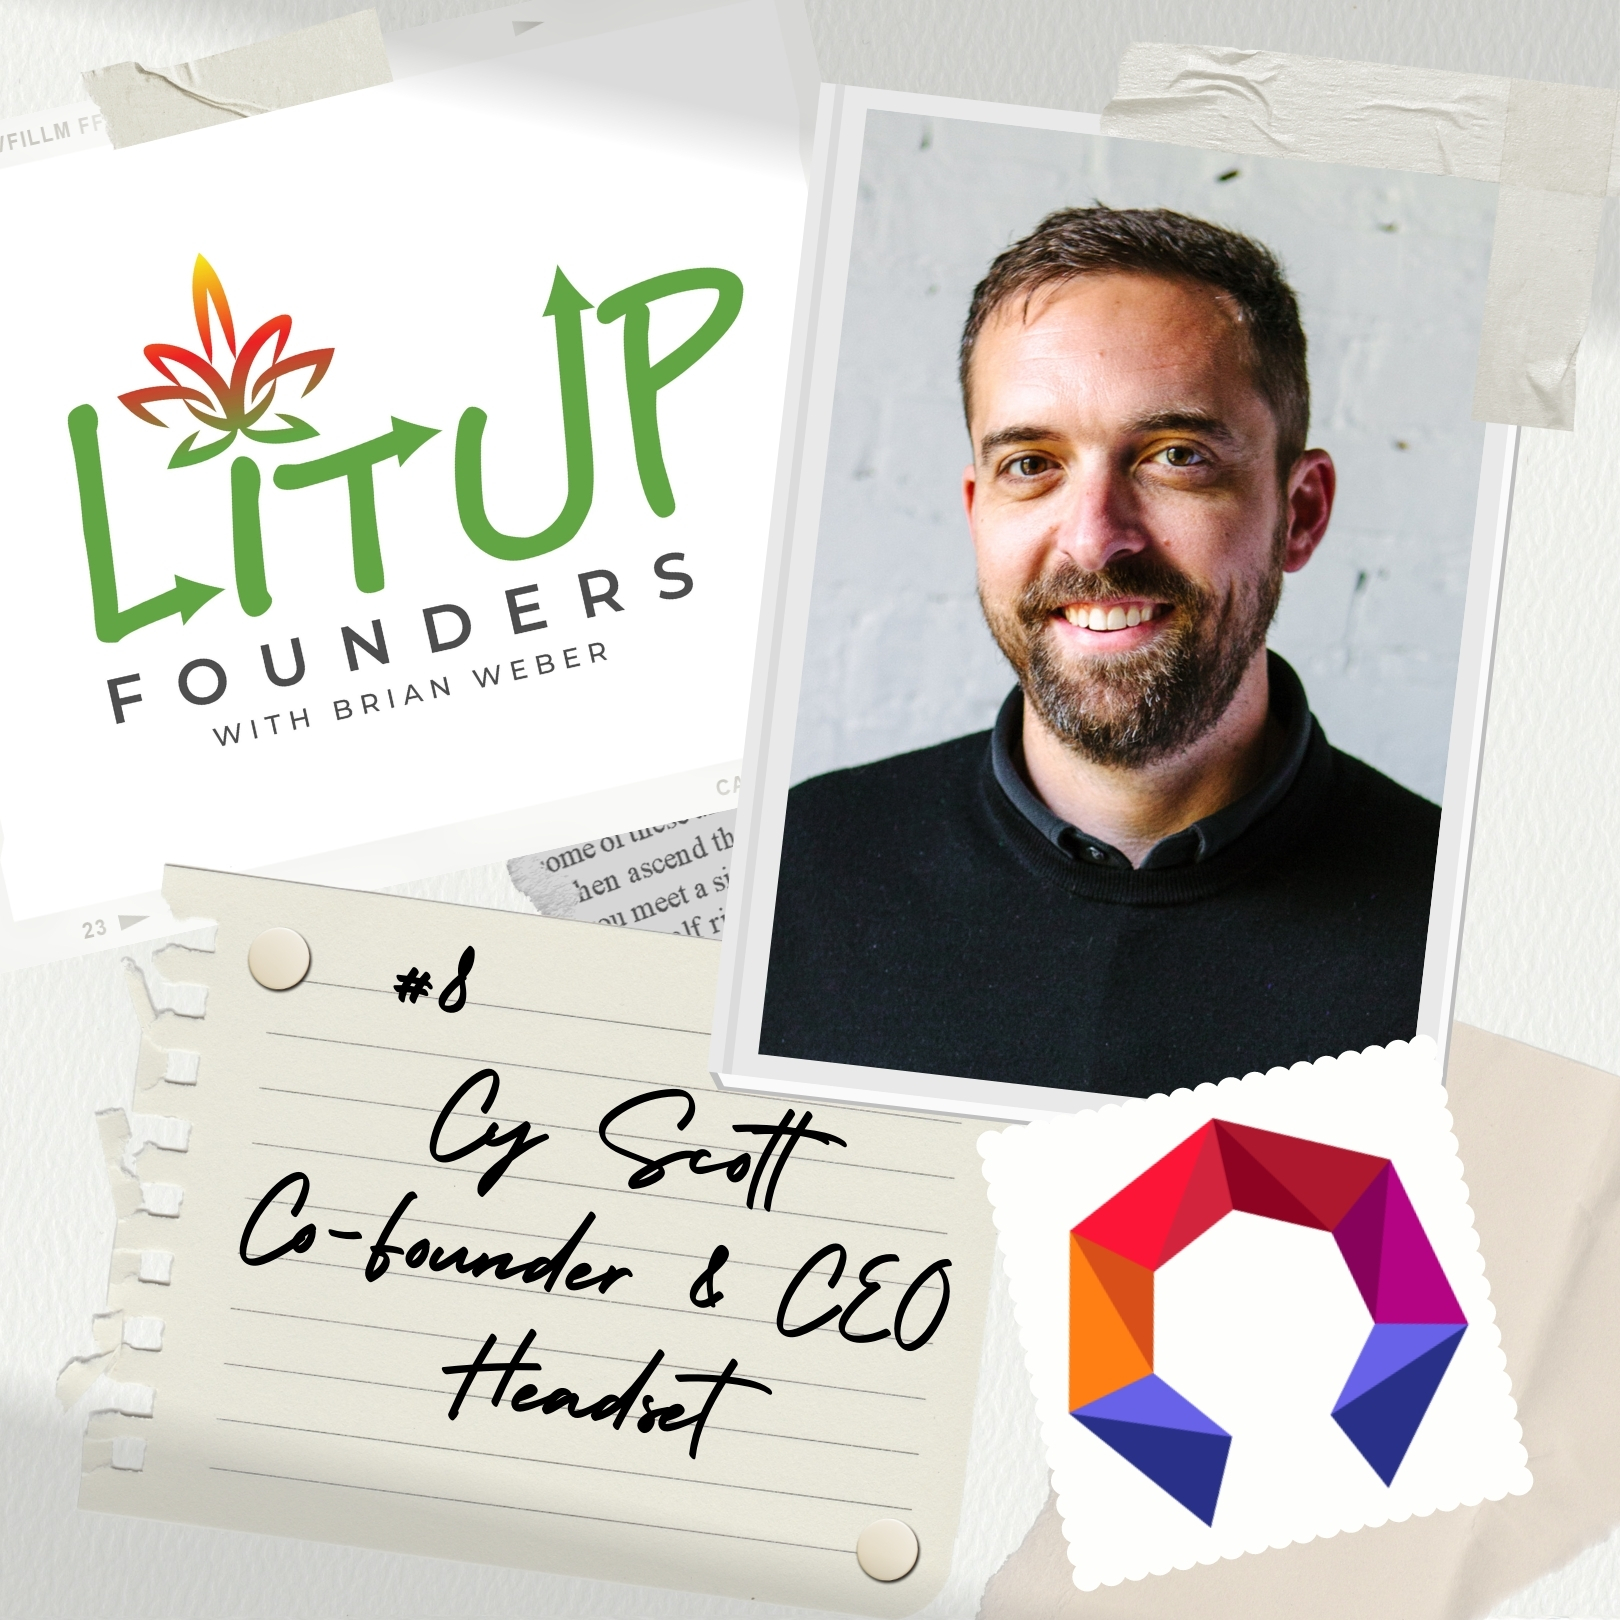 Artwork for podcast Lit Up Founders